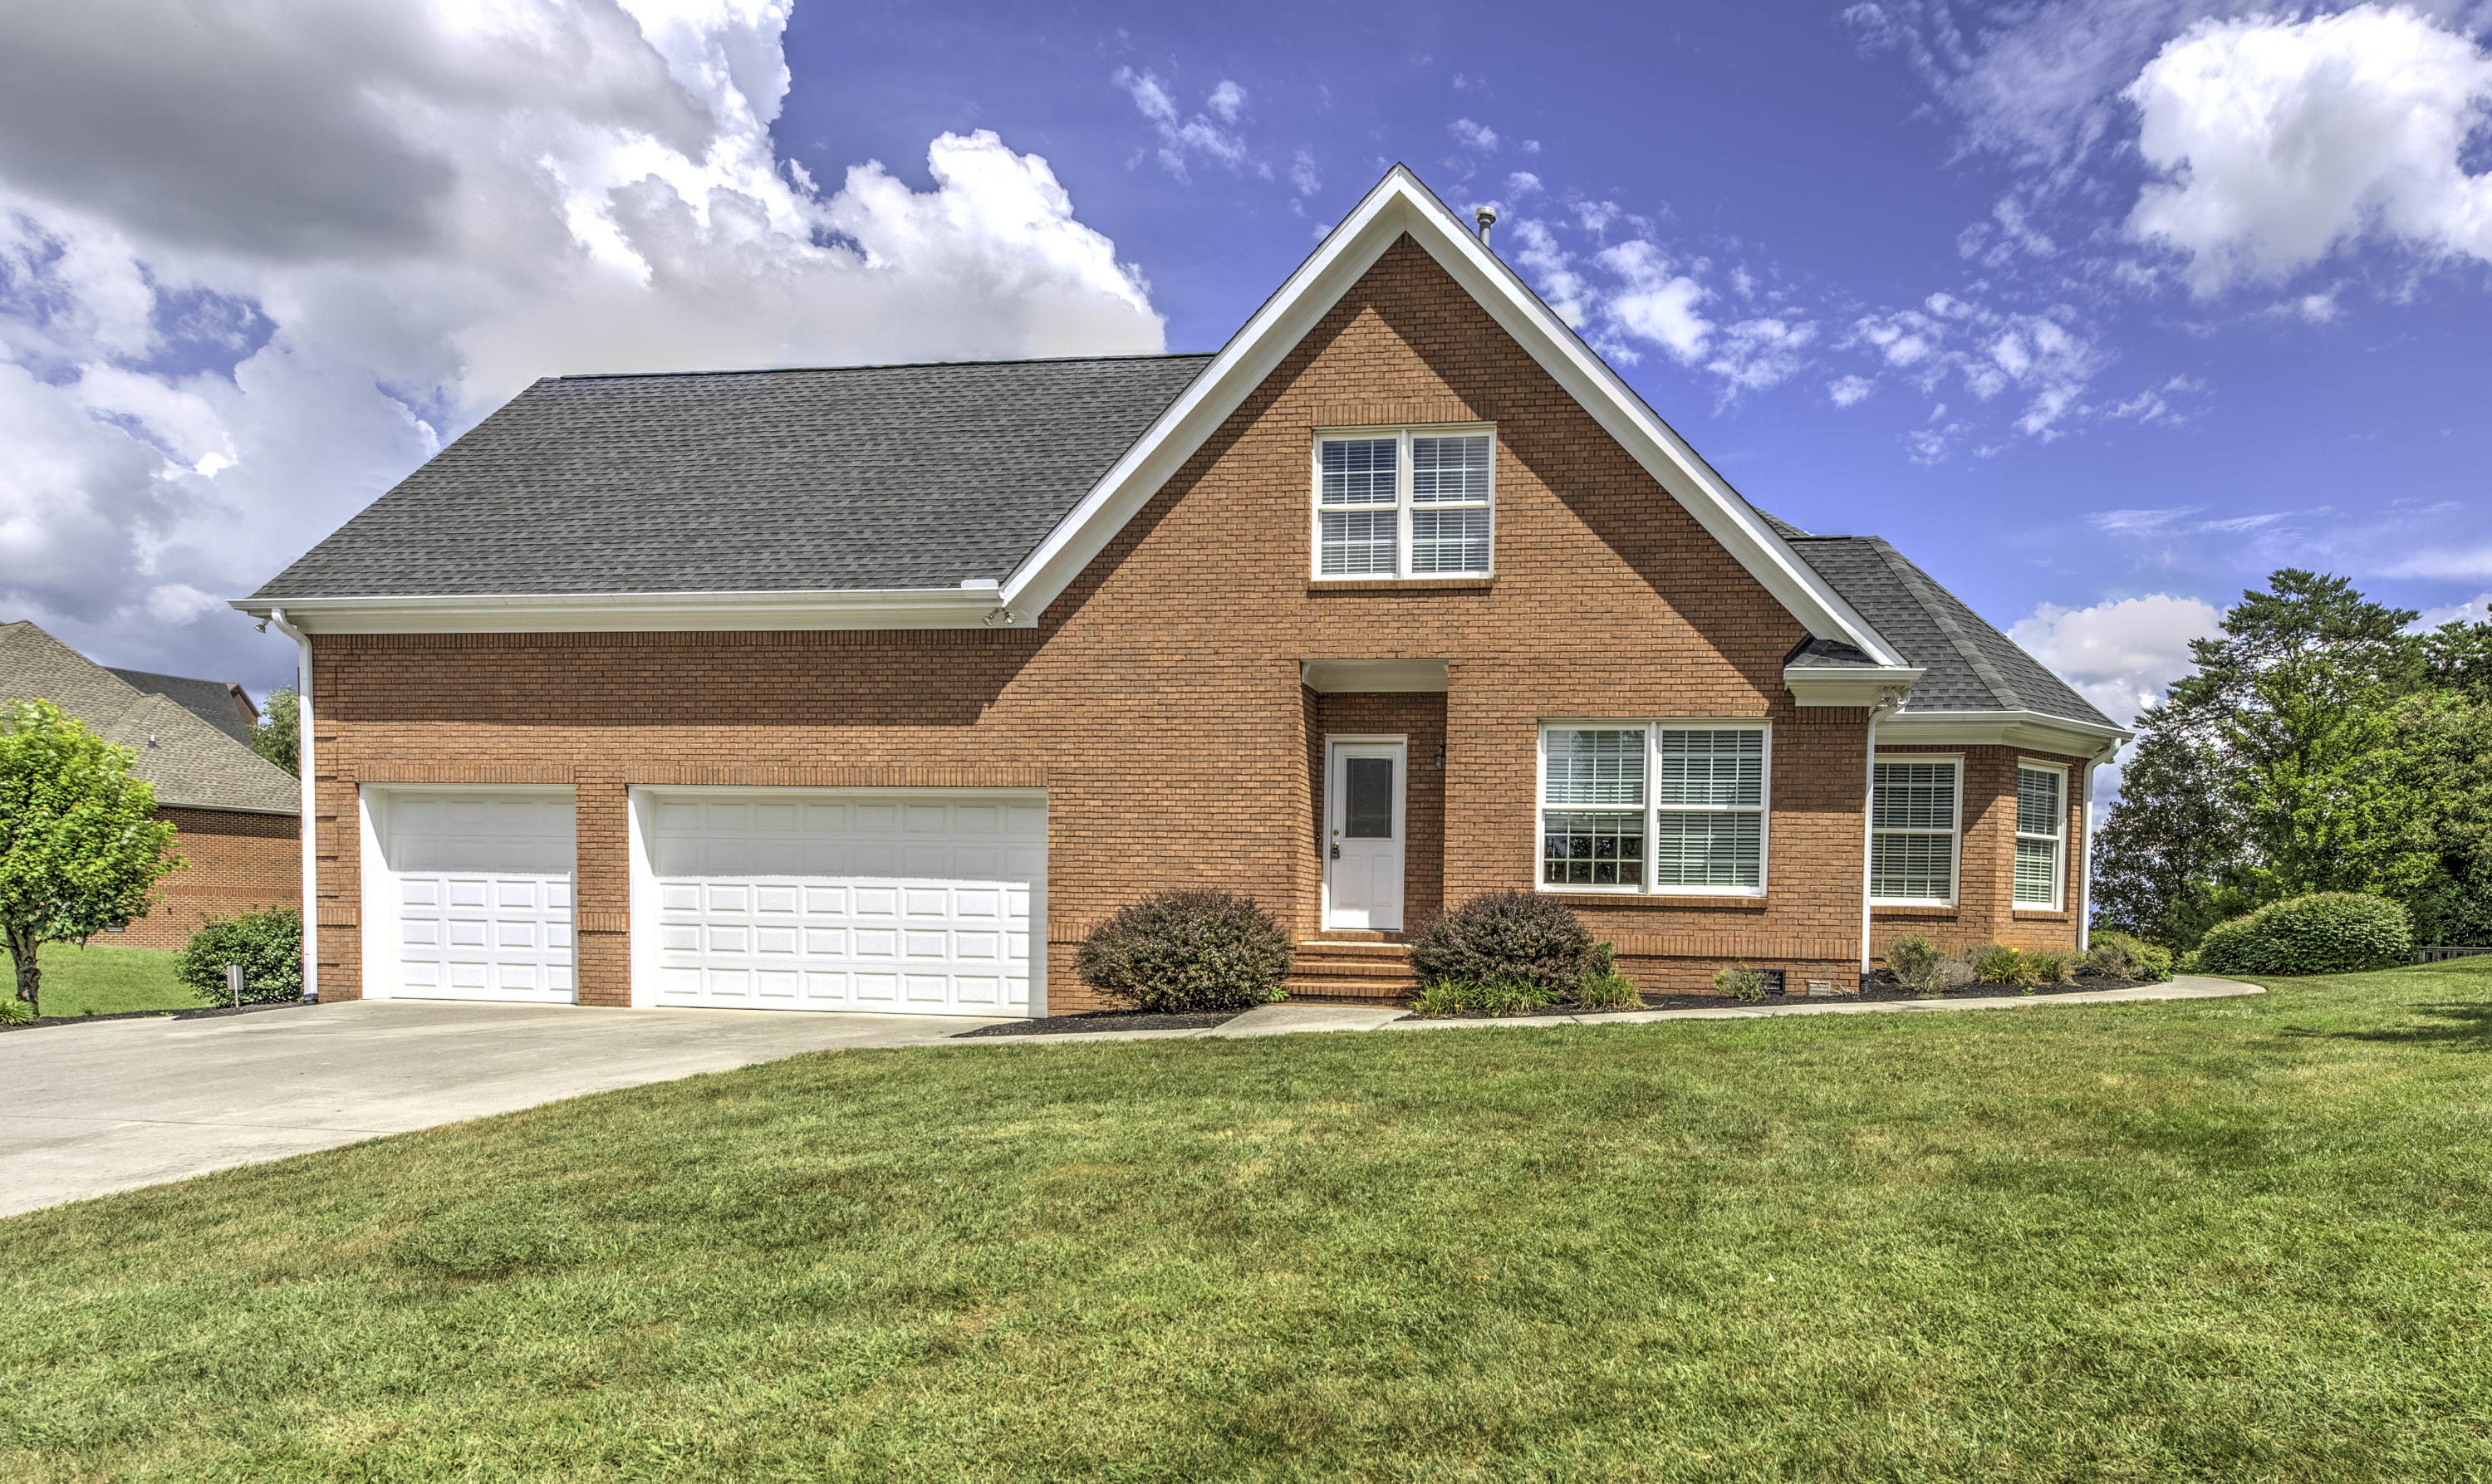 544 Cumberland Ridge Drive, Knoxville, Tennessee 37922, 4 Bedrooms Bedrooms, ,4 BathroomsBathrooms,Single Family,For Sale,Cumberland Ridge,1055150